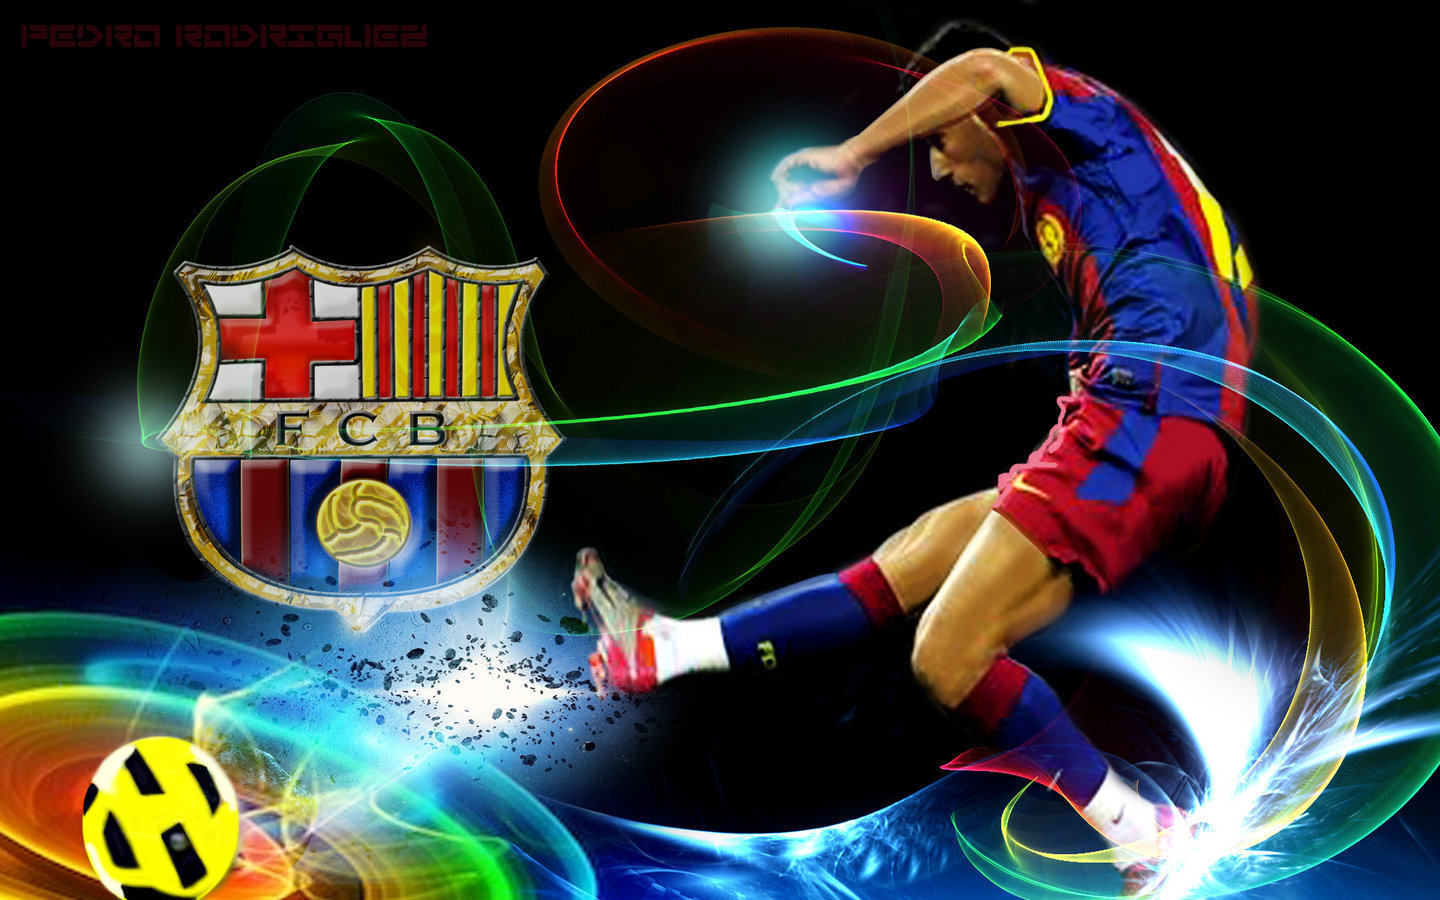 Manchester United Wallpaper Iphone 5 Leonel Messi Wallpapers Fc Barcelona New Hd Wallpapers